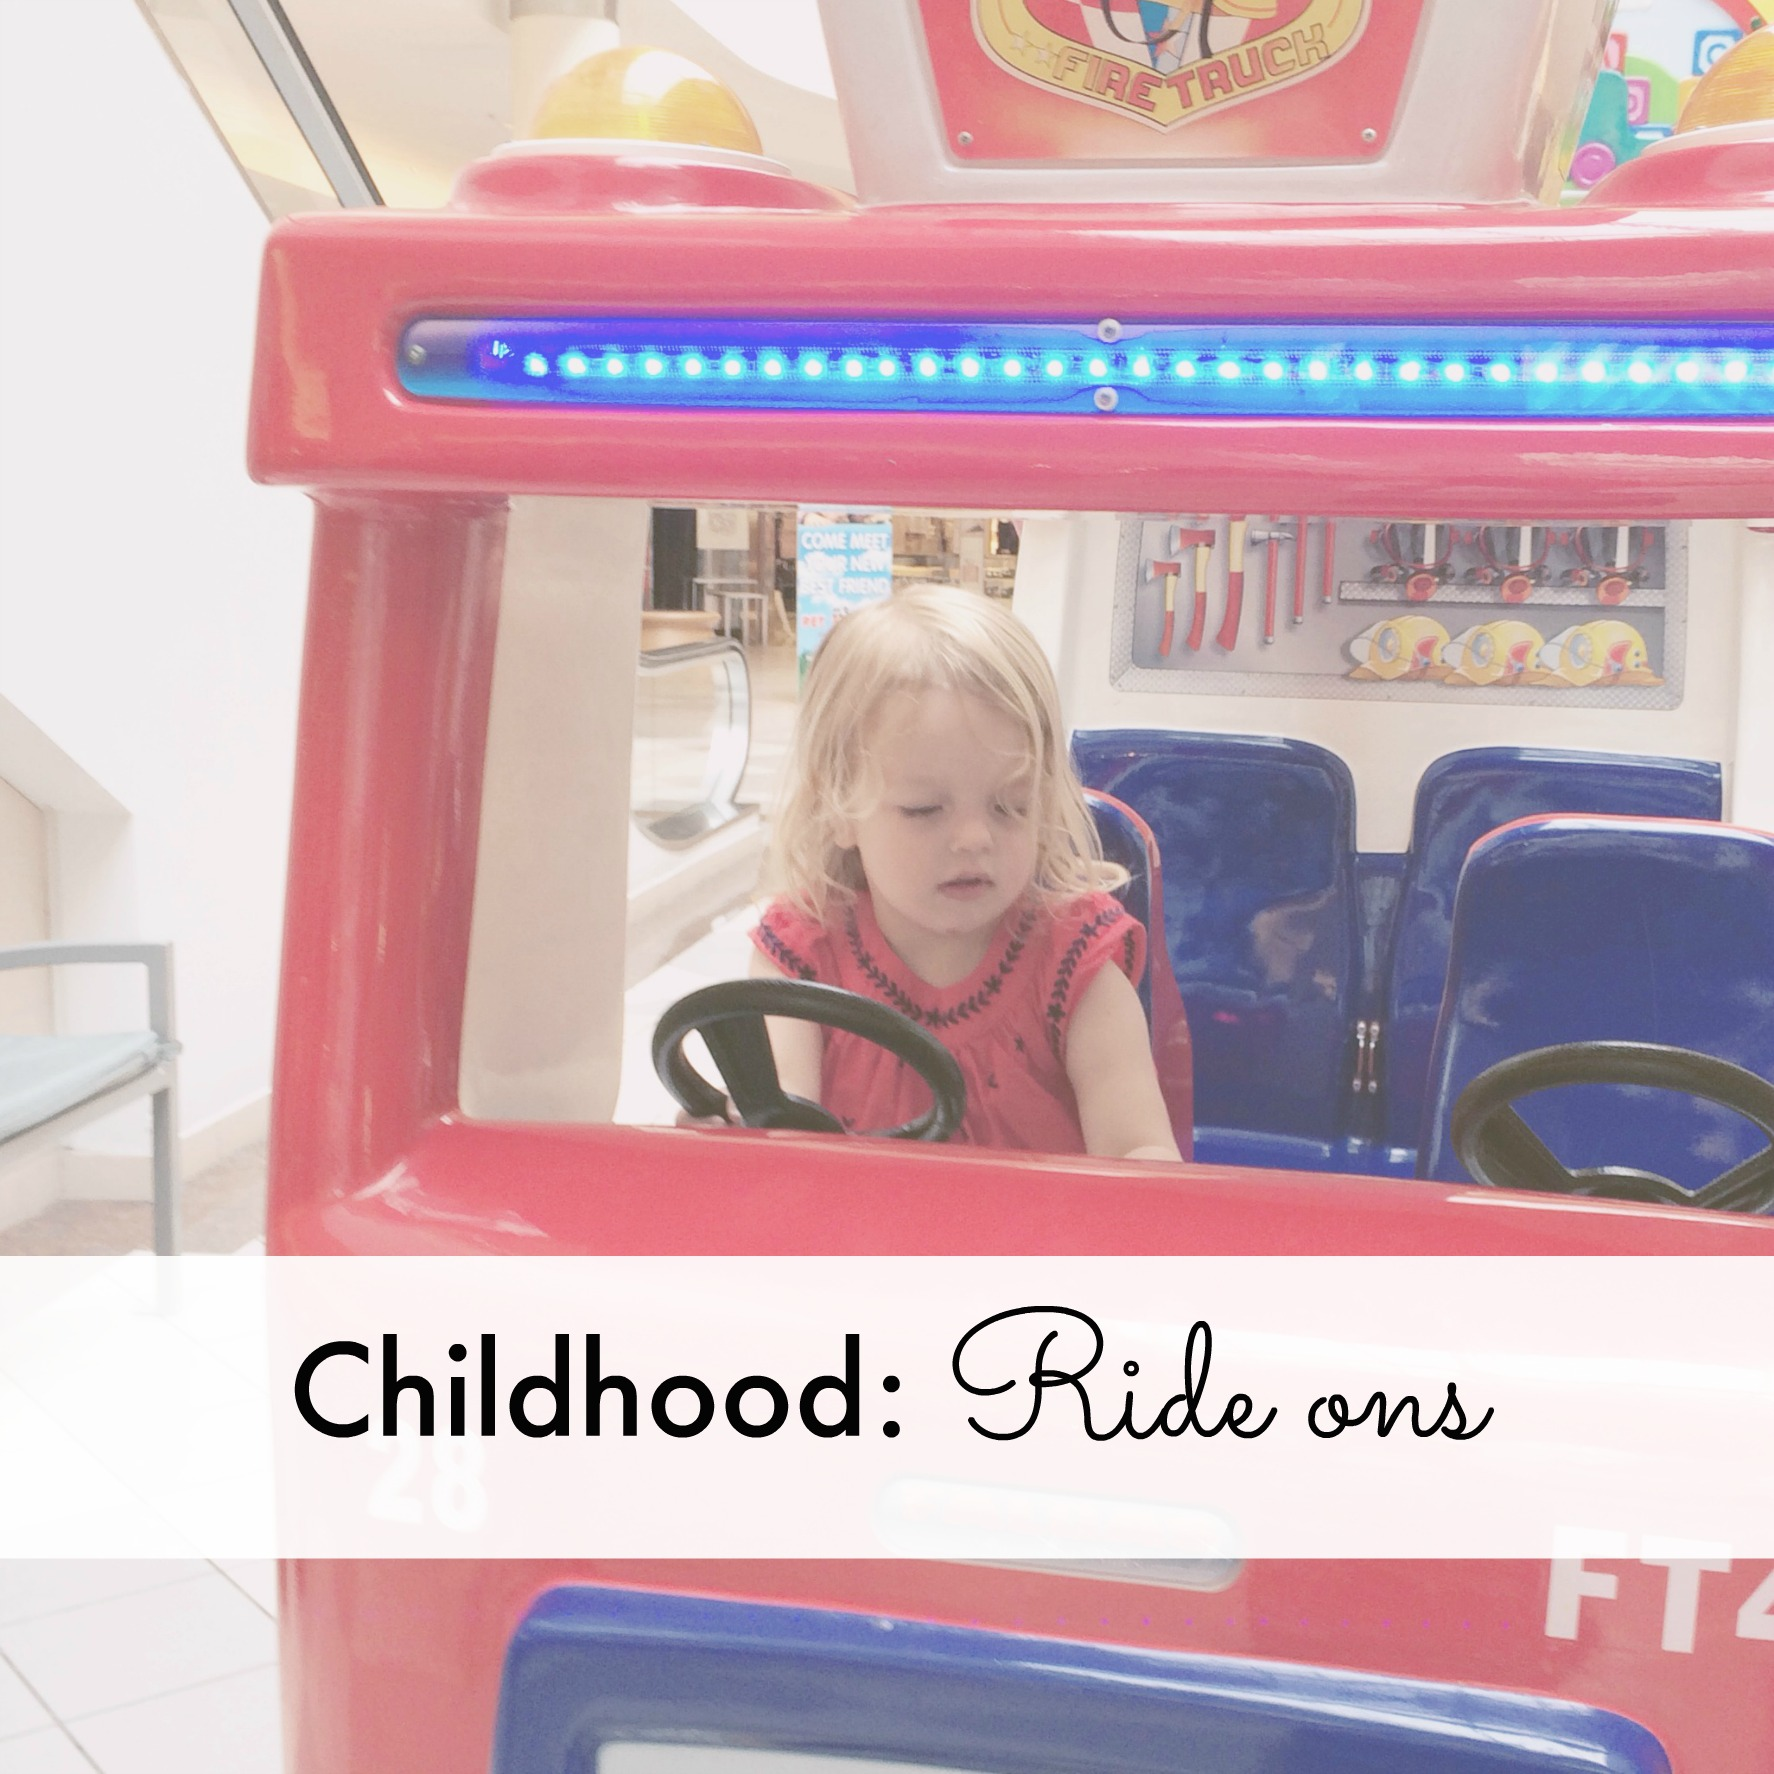 Childhood: supermarket ride-ons